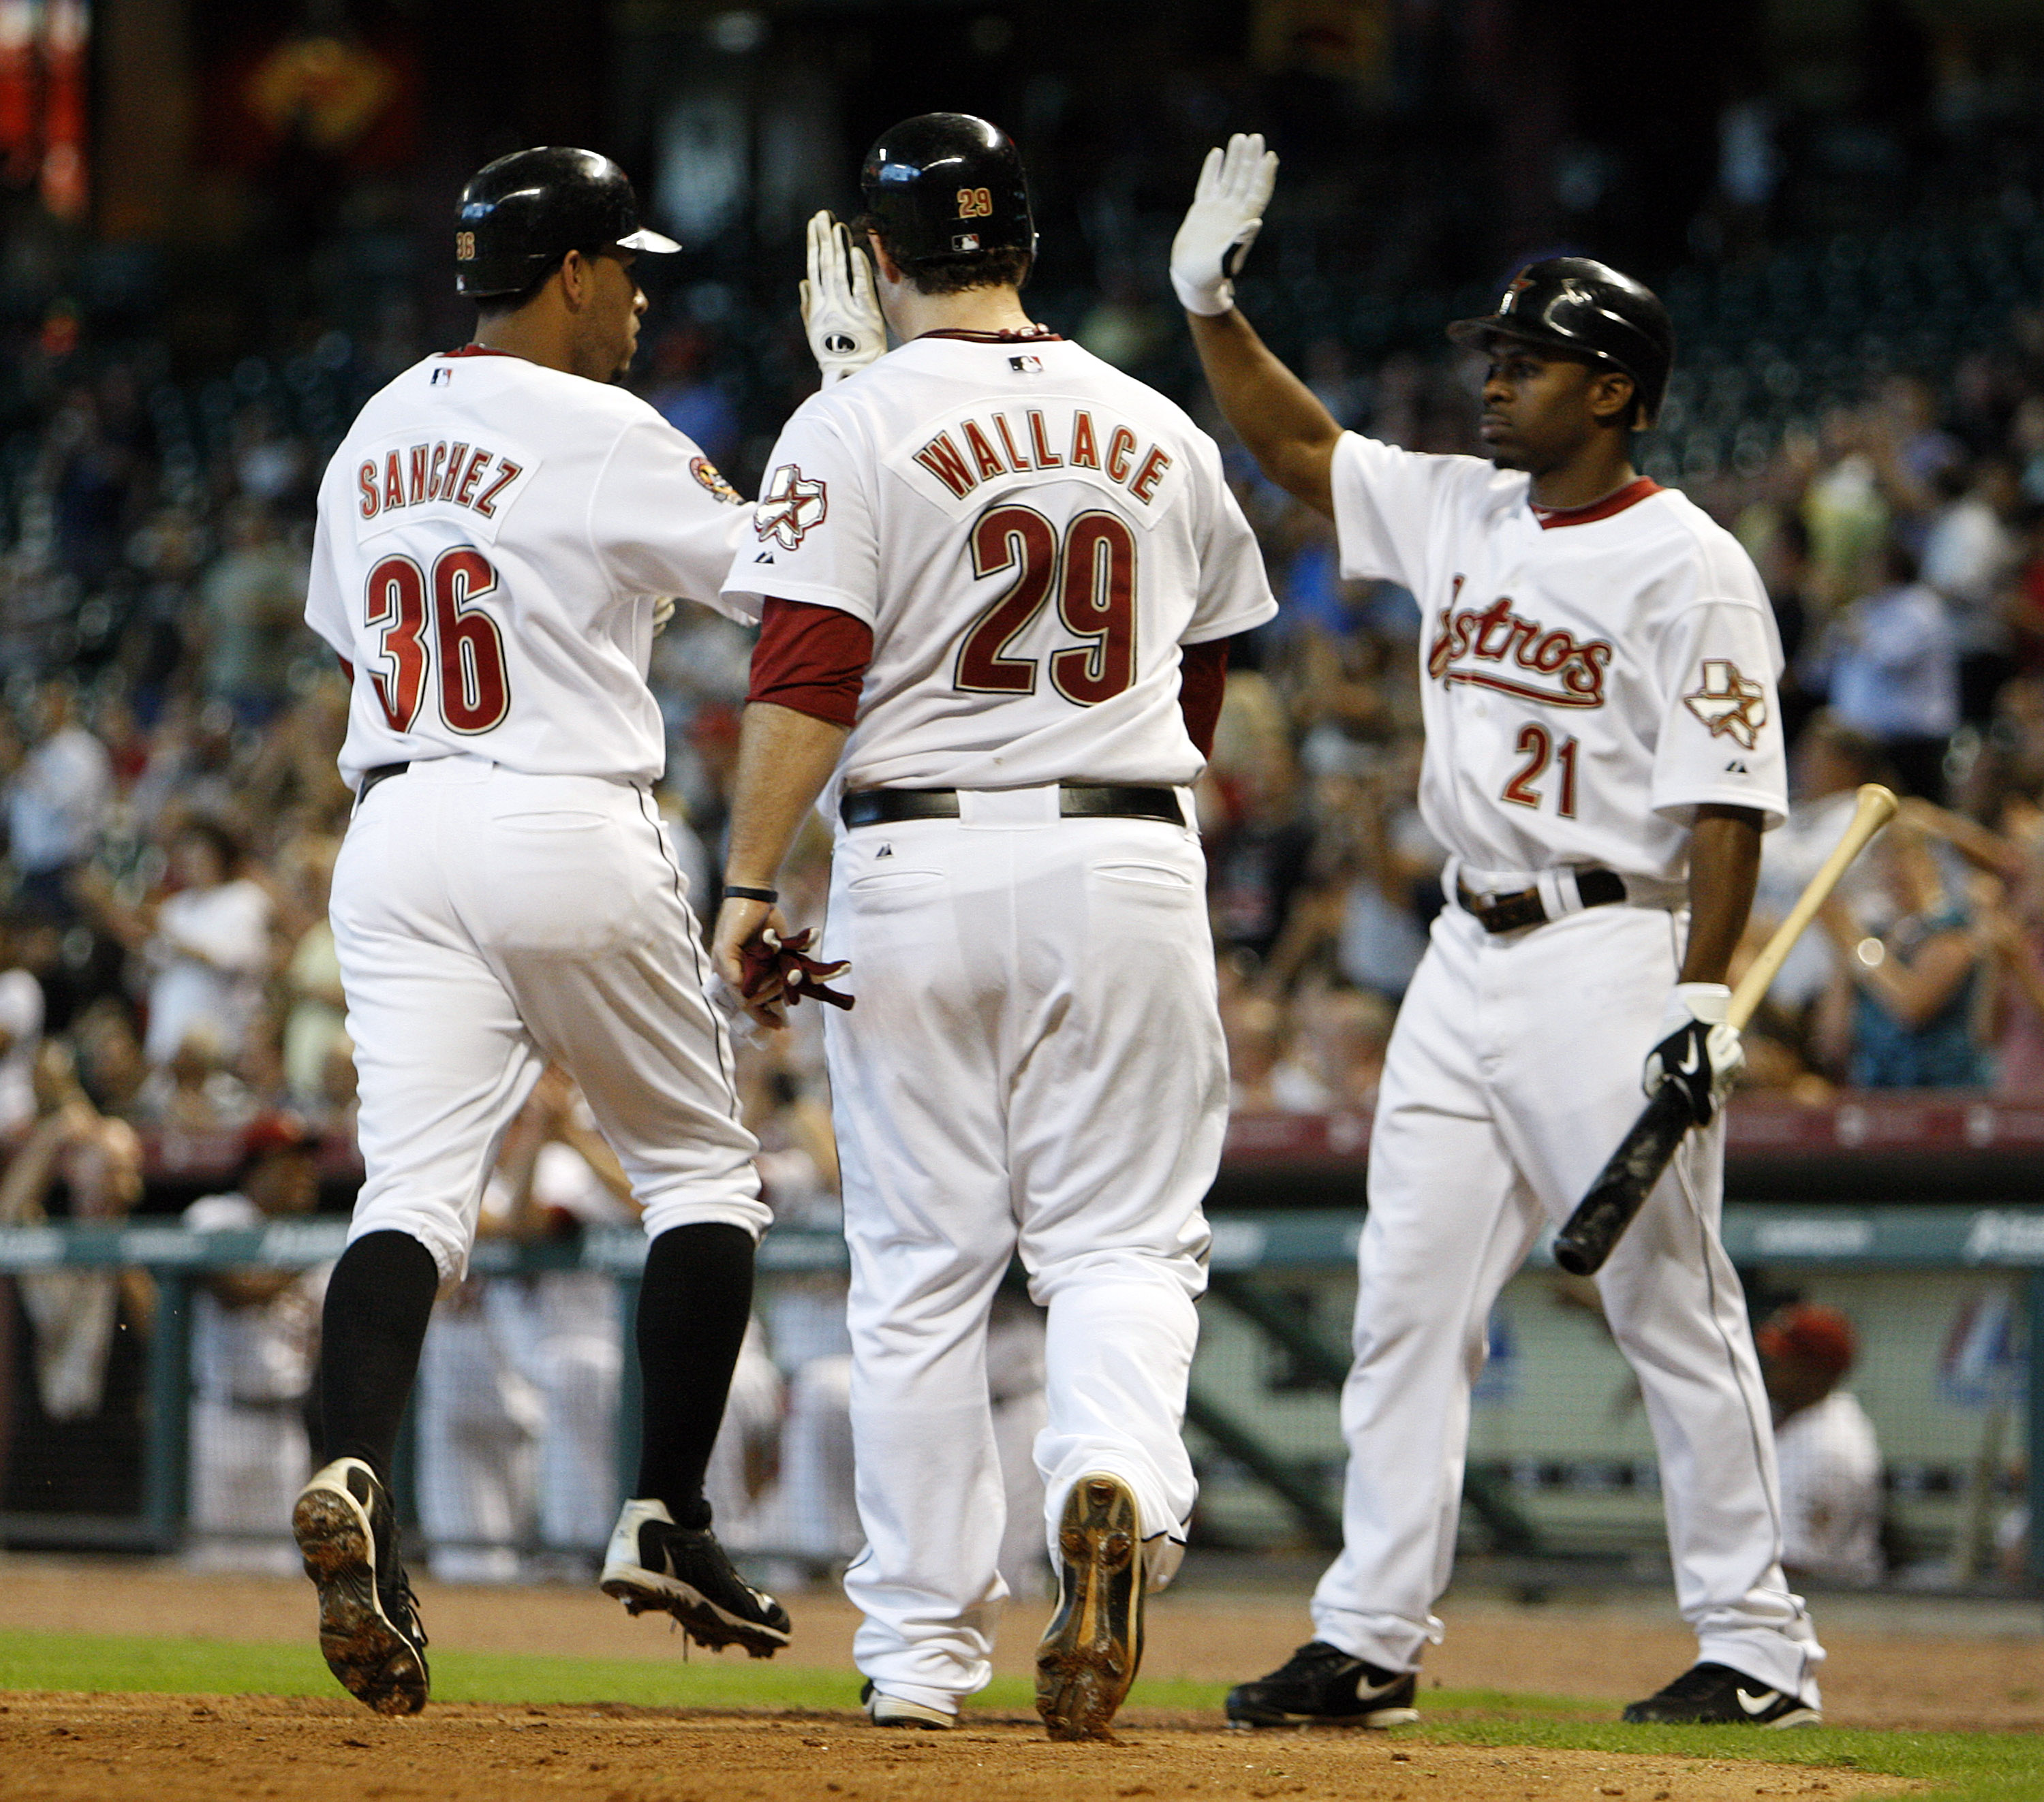 HOUSTON - SEPTEMBER 15:  Angel Sanchez #36 and Brett Wallace #29 of the Houston Astros score on a single by Brian Bogusevic of the Houston Astros in the fifth inning as Micahael Bourn greets  them at home plate during a baseball game against the Milwaukee